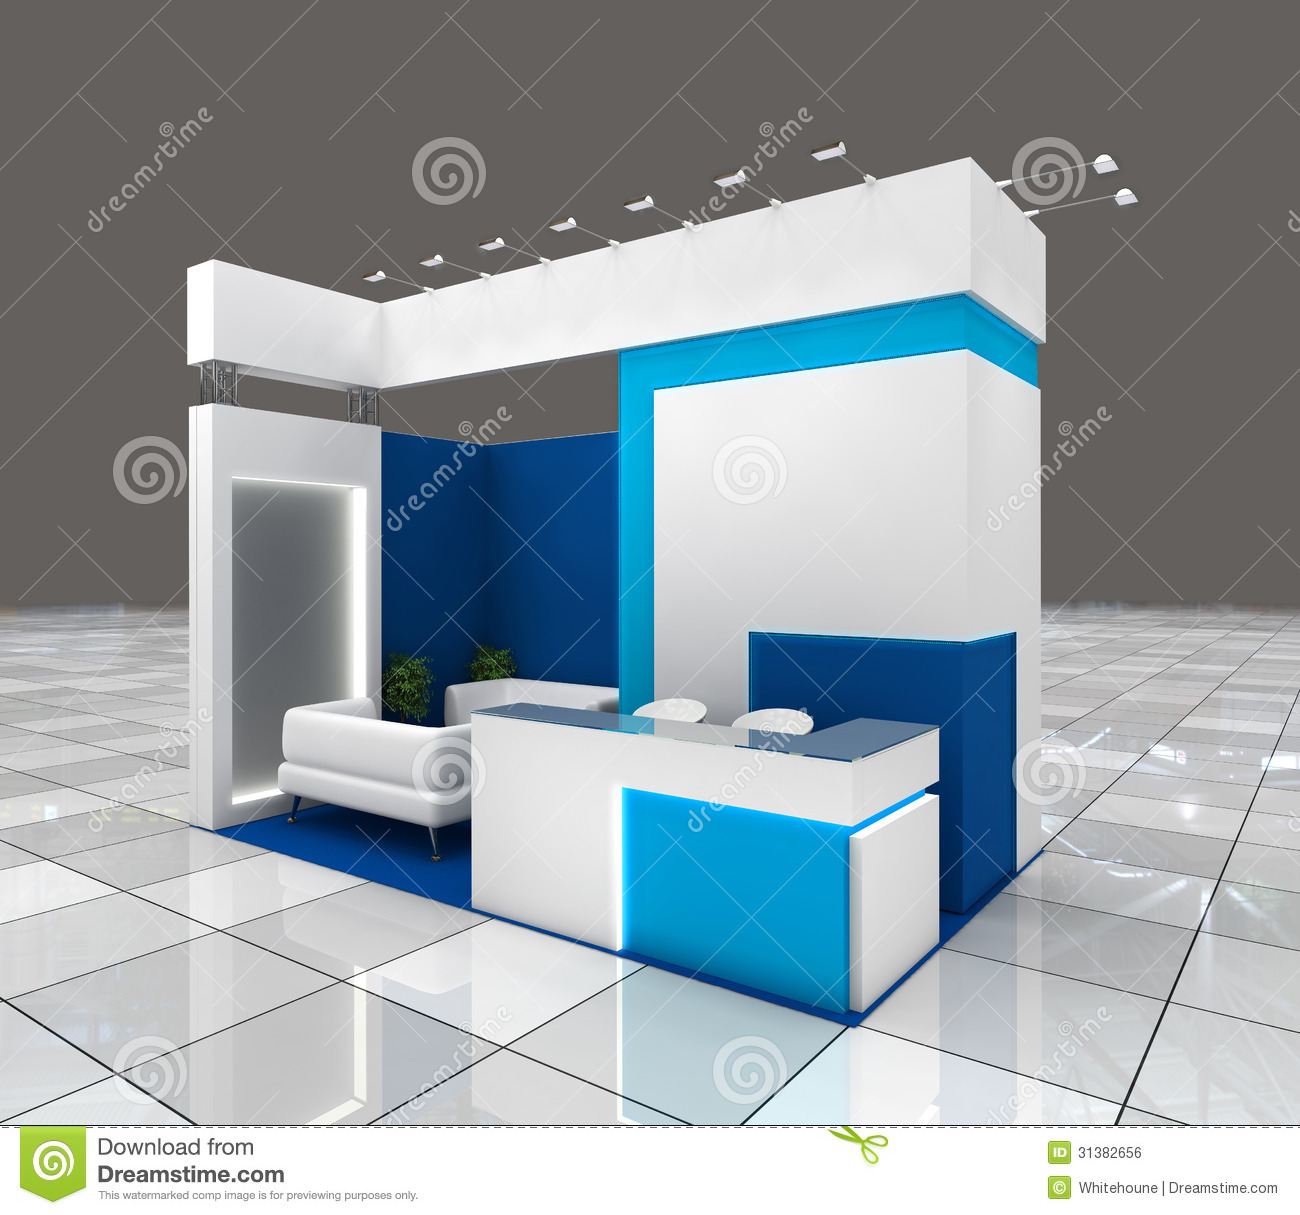 Exhibition Stand Design Small : Exhibition stand design royalty free stock image